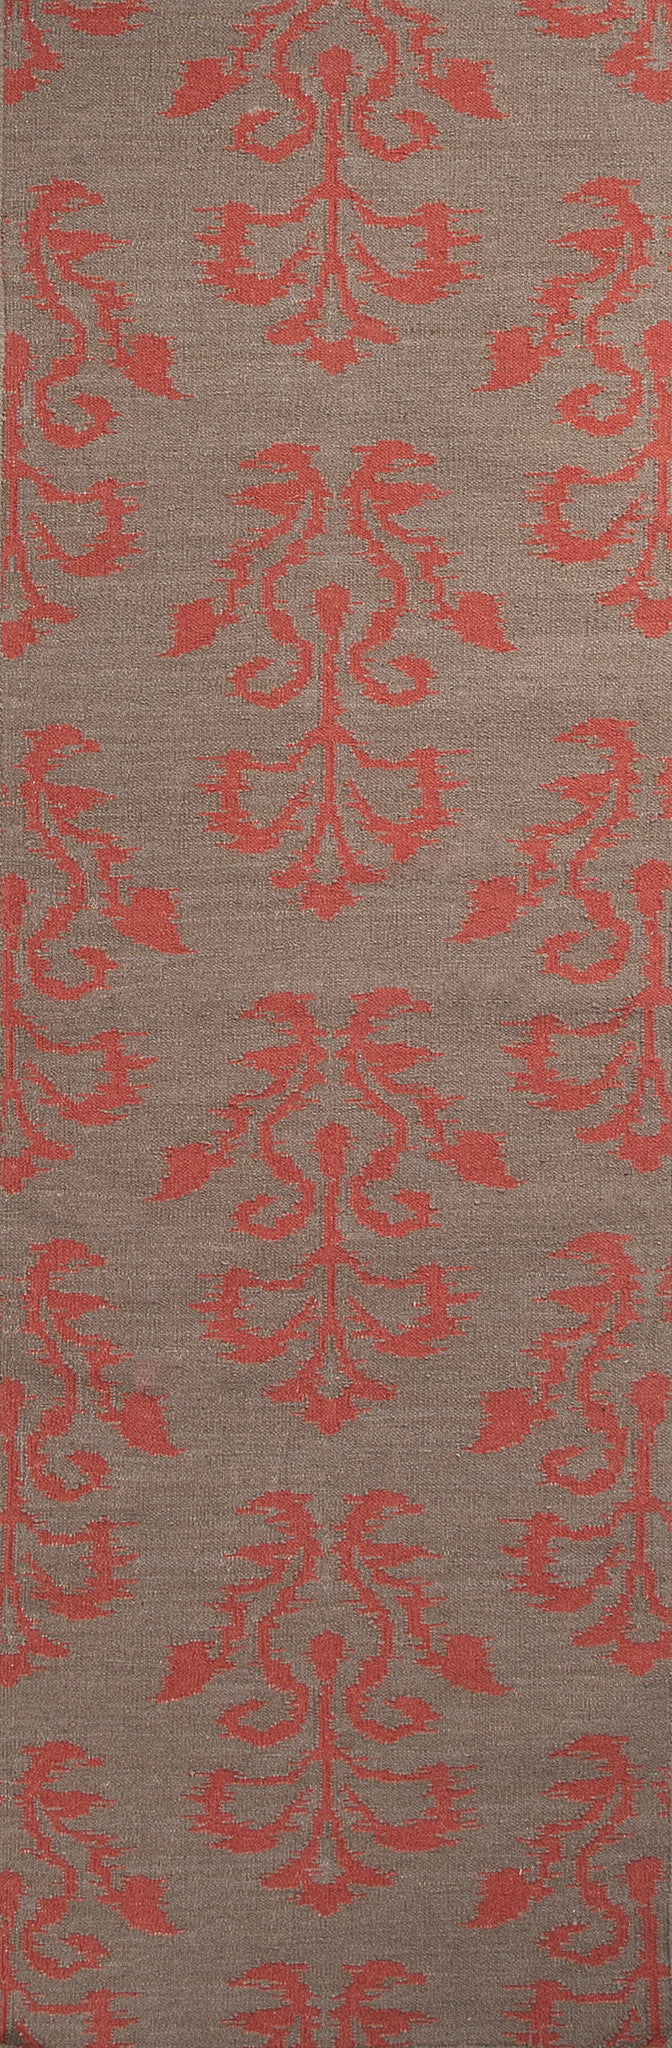 Jaipur Rugs Flat-Weave Tribal Pattern Gray/Red Wool Area Rug